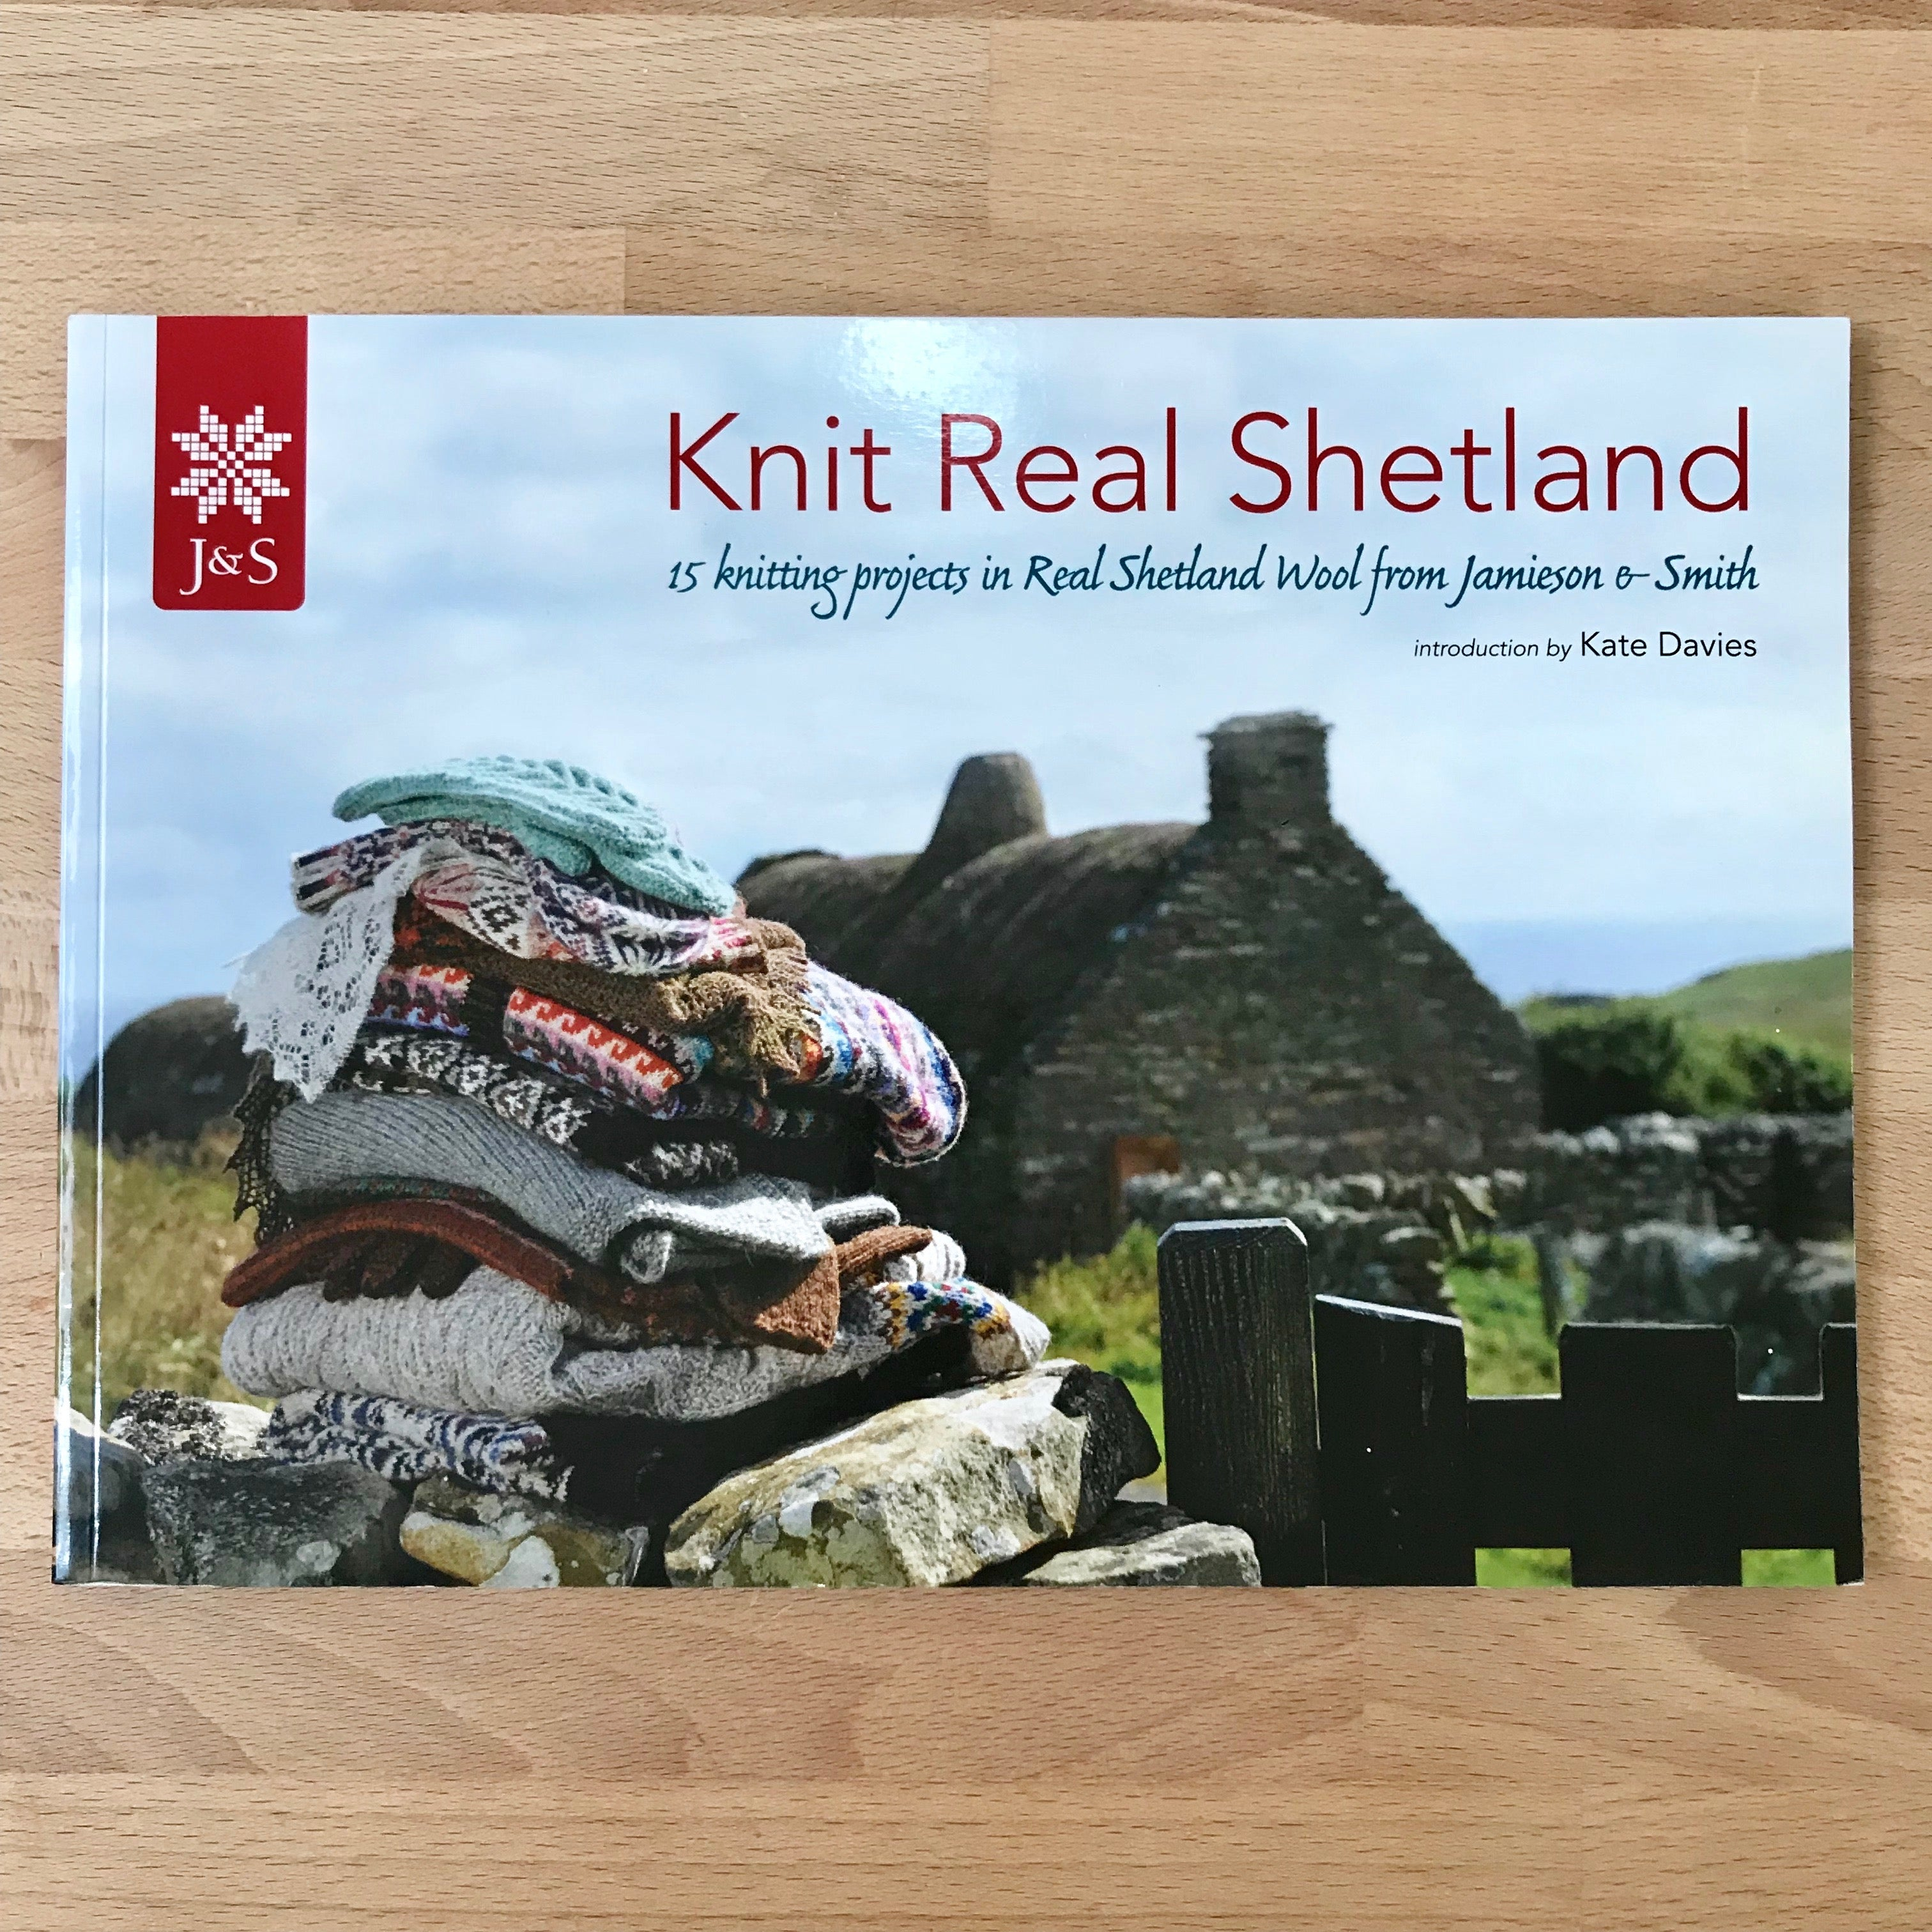 Knit Real Shetland: 15 Knitting Projects